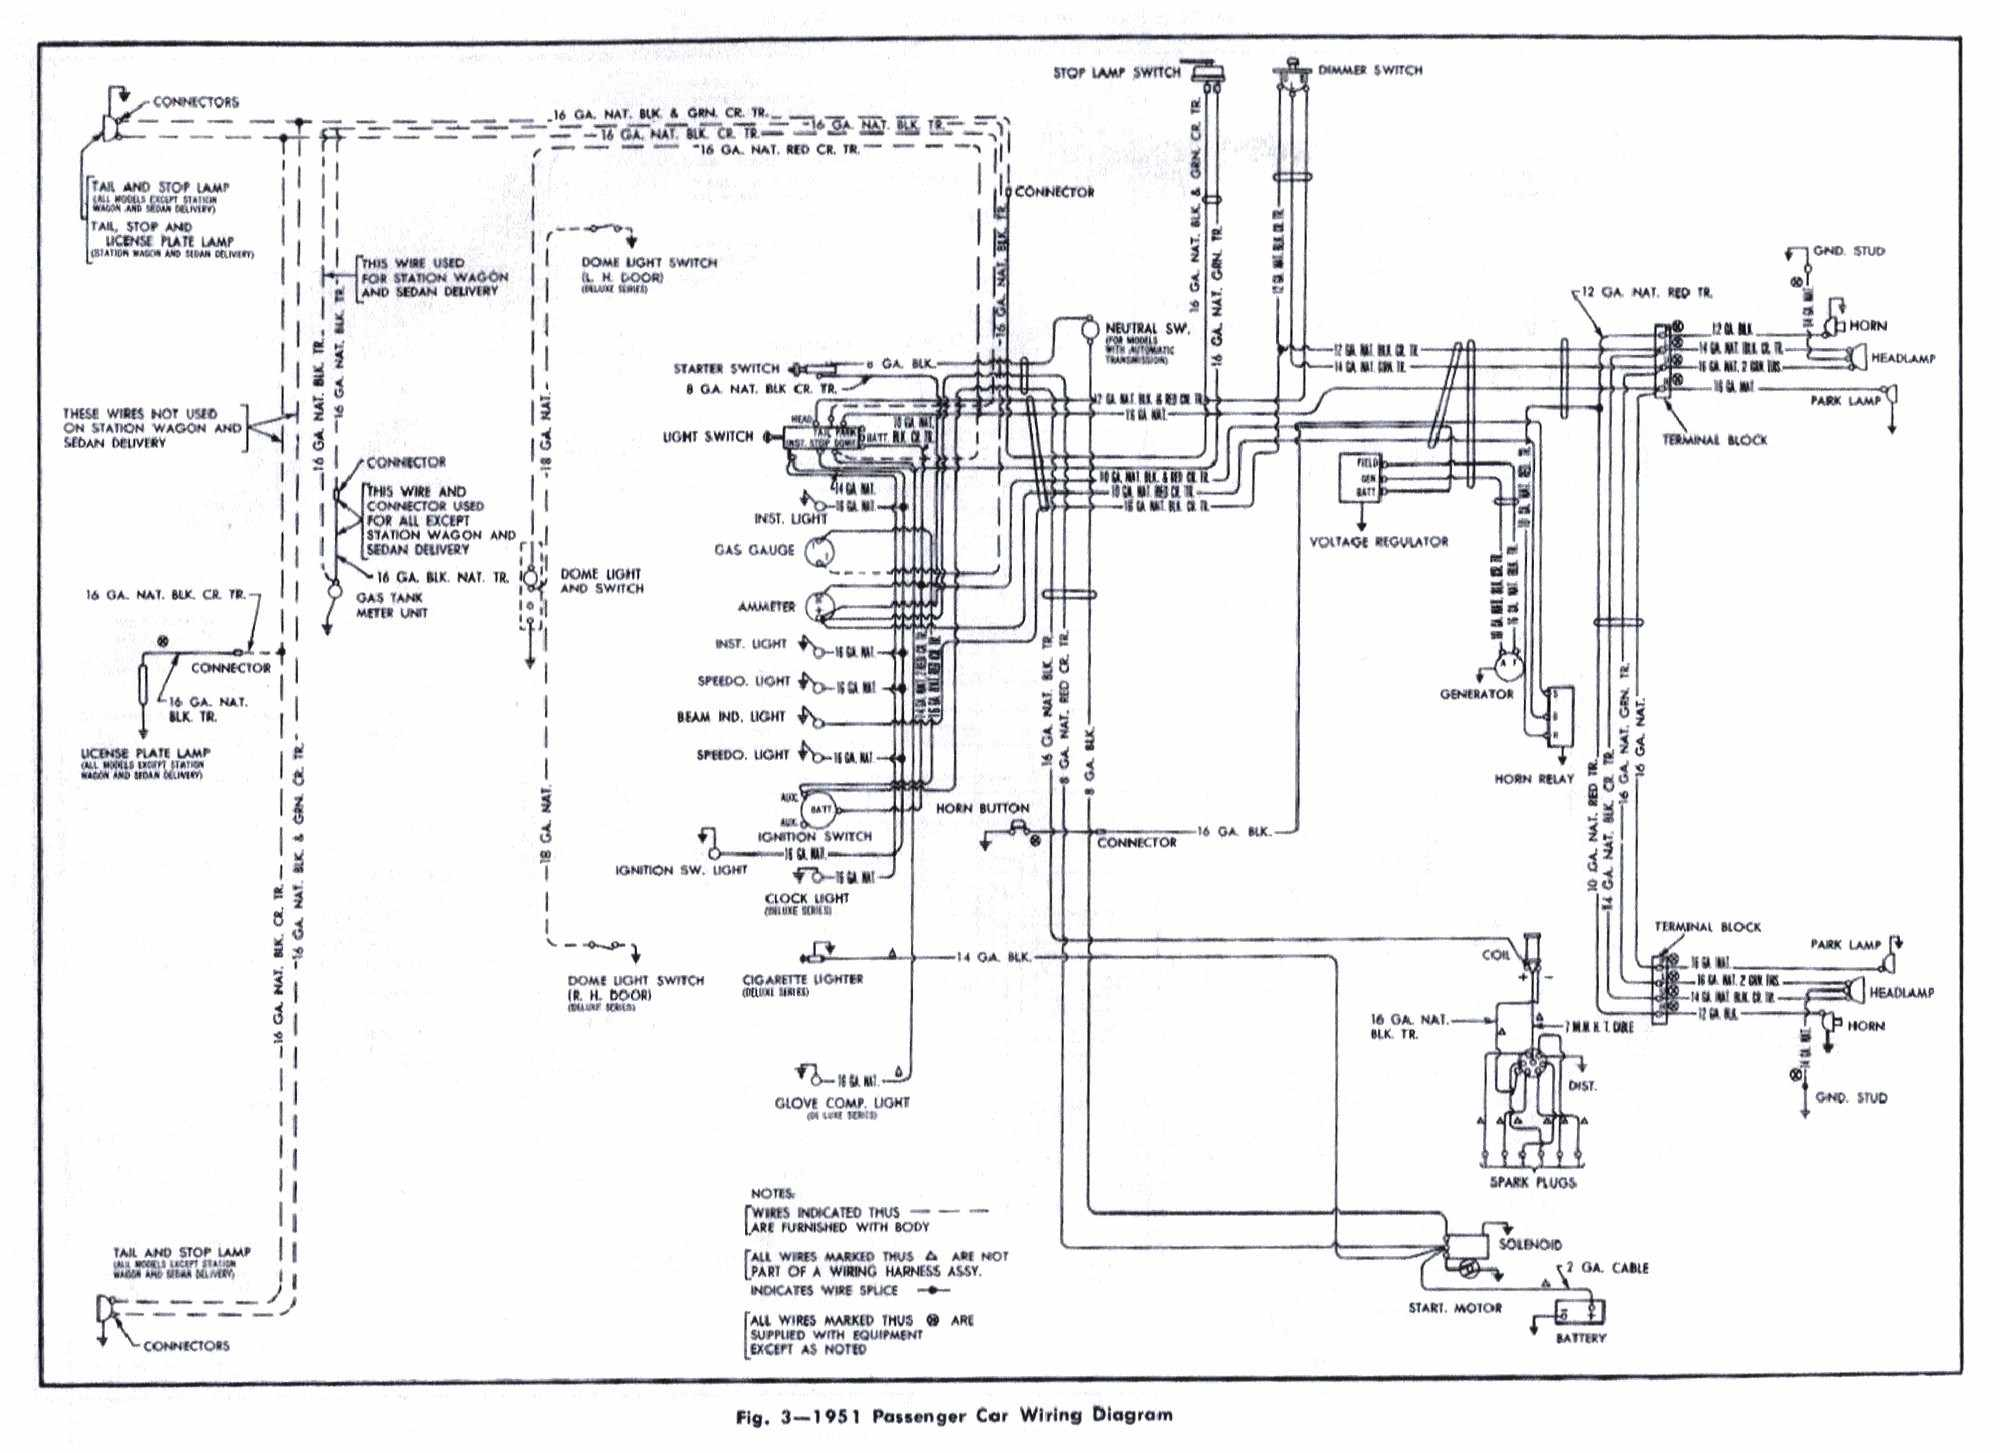 1951 chevy turn signal wiring diagram introduction to electrical 1978 chevy turn signal wiring diagram 1951 ford turn signal wiring diagram free download wiring diagram u2022 rh msblog co